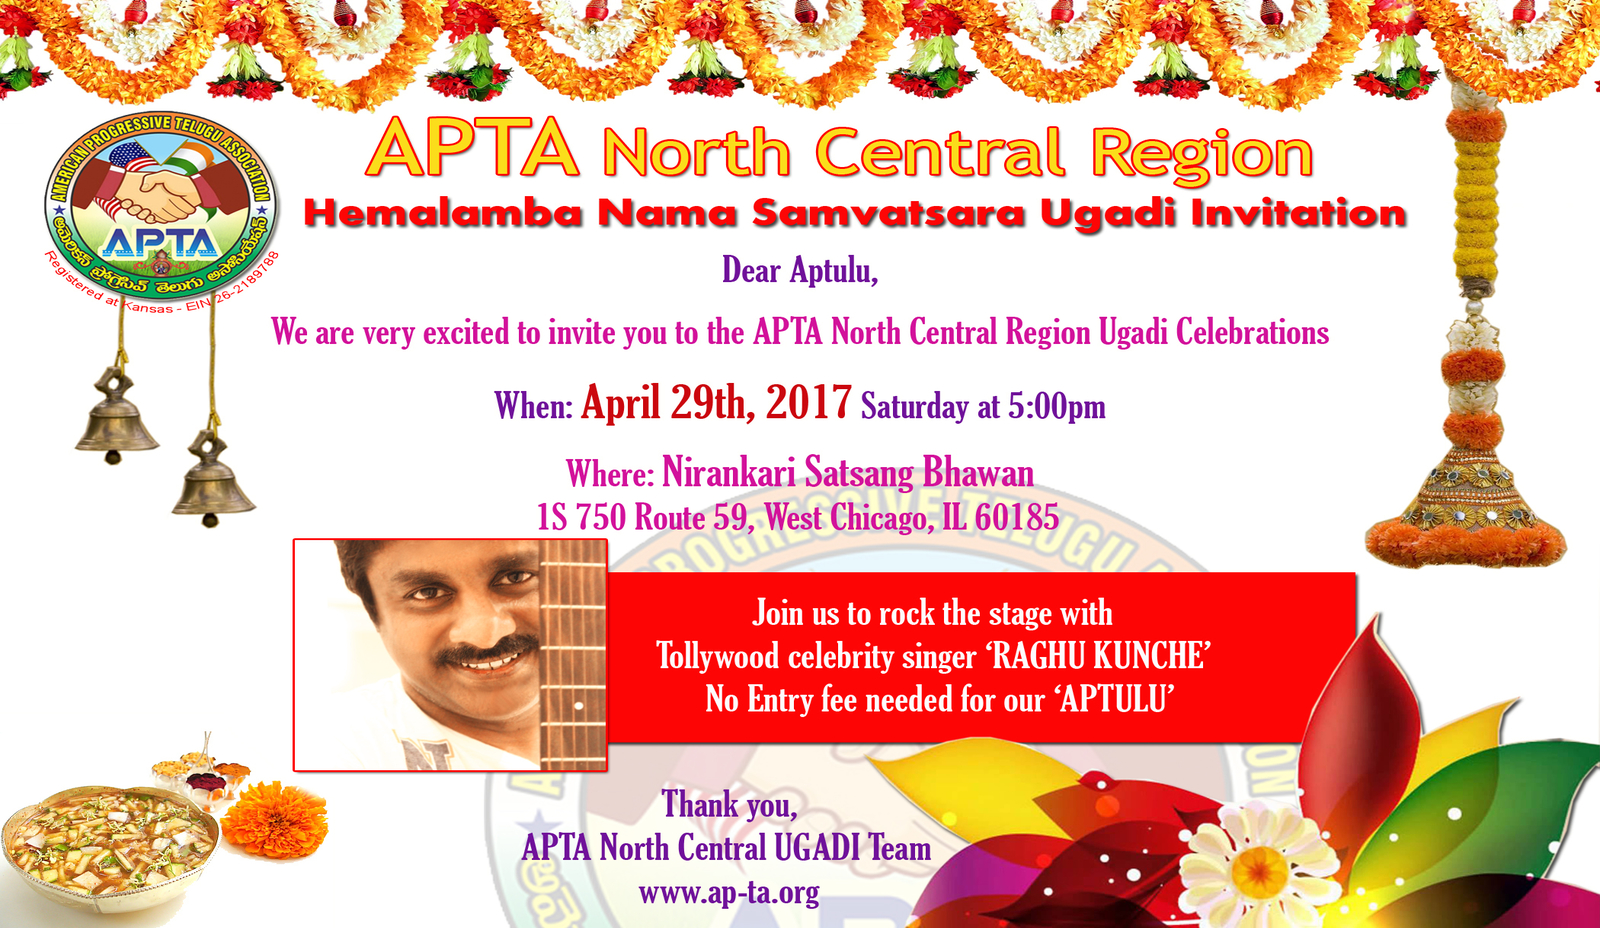 APTA North central region Ugadi Invitation 2017